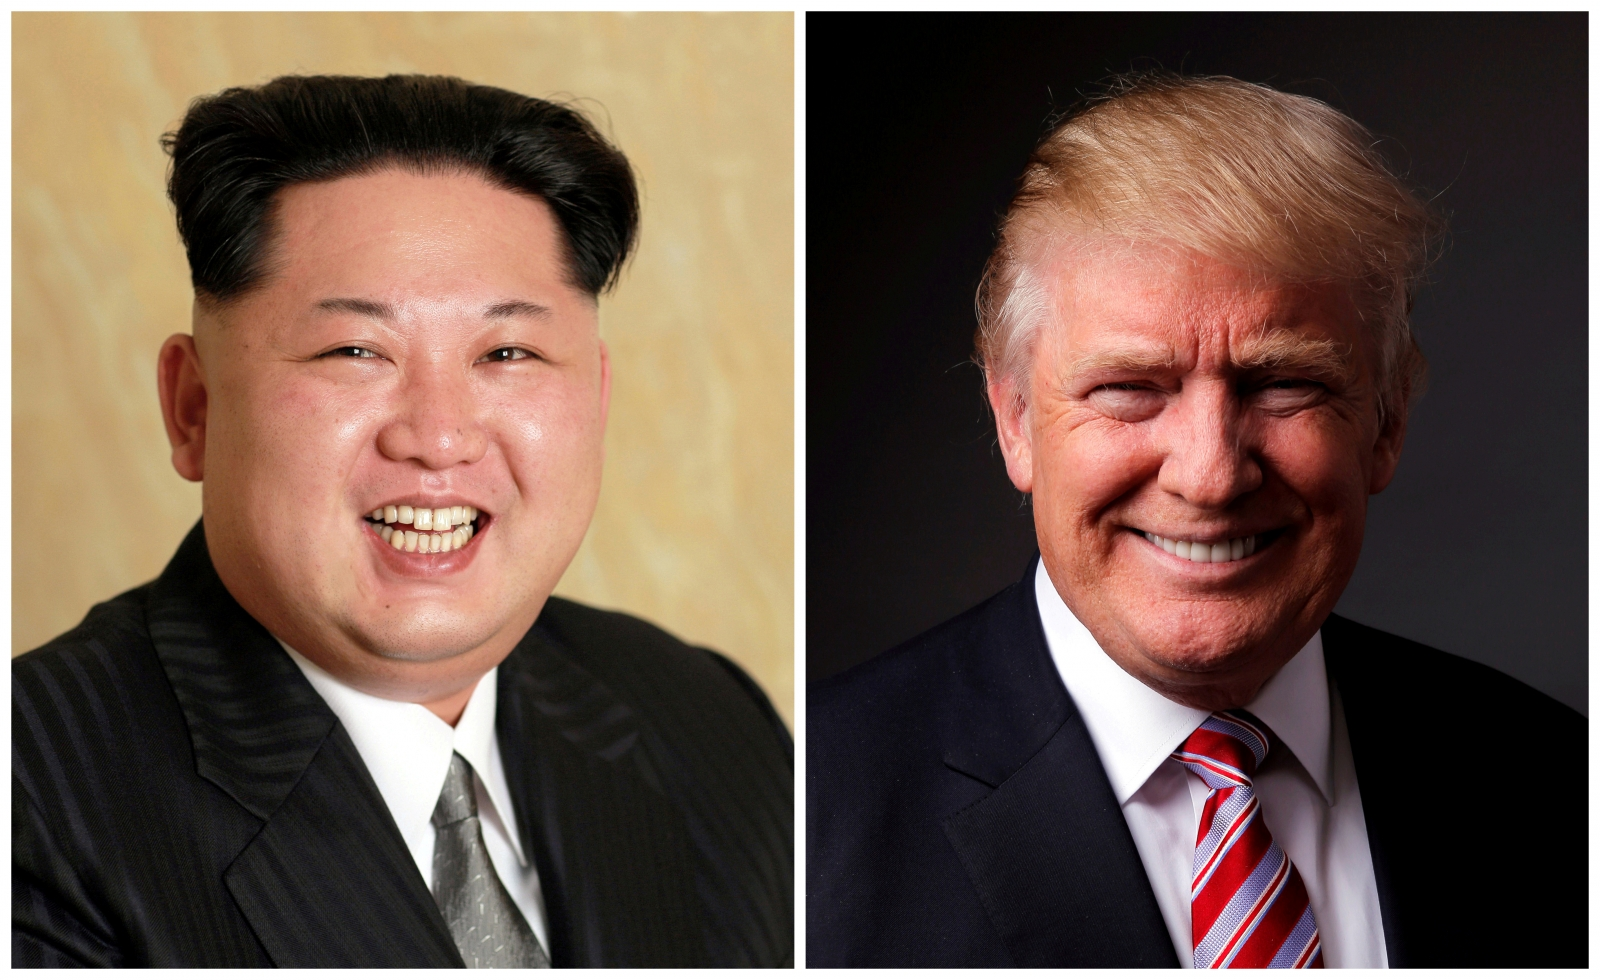 North Korea warns Donald Trump: 'We do not wish for a war but shall not avoid it'